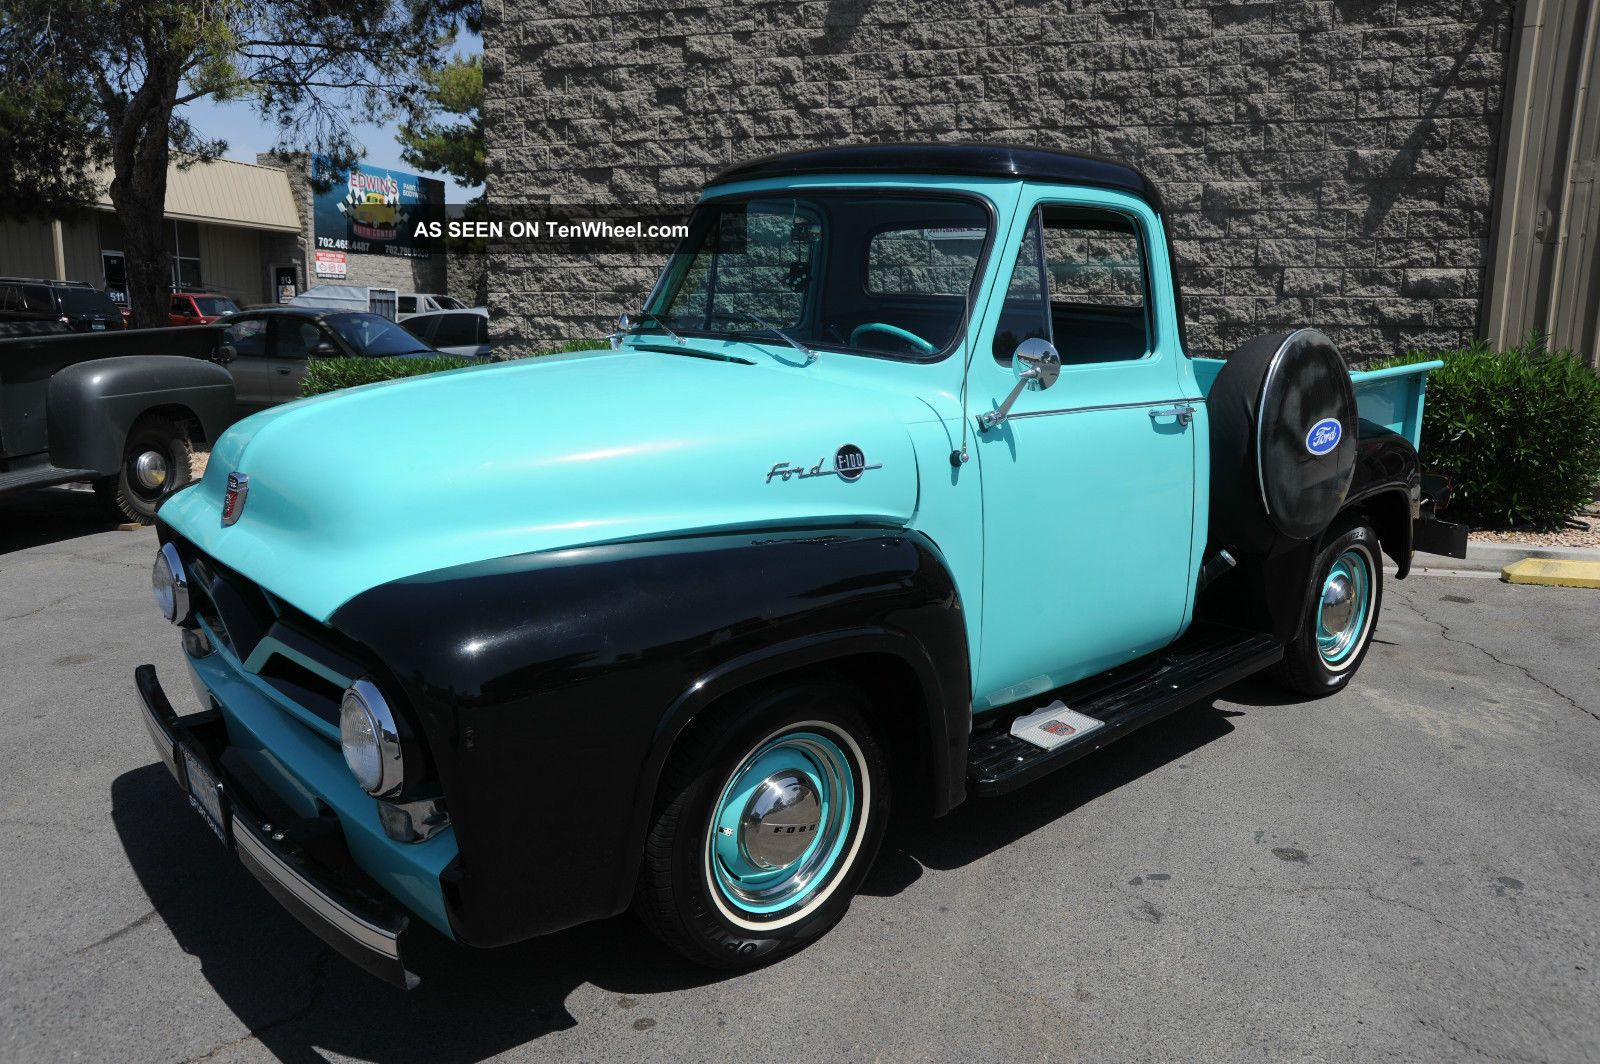 1955 Ford F100 Cool Resto Mod Vintage Truck With V8 Auto Digital Side Dash Etc